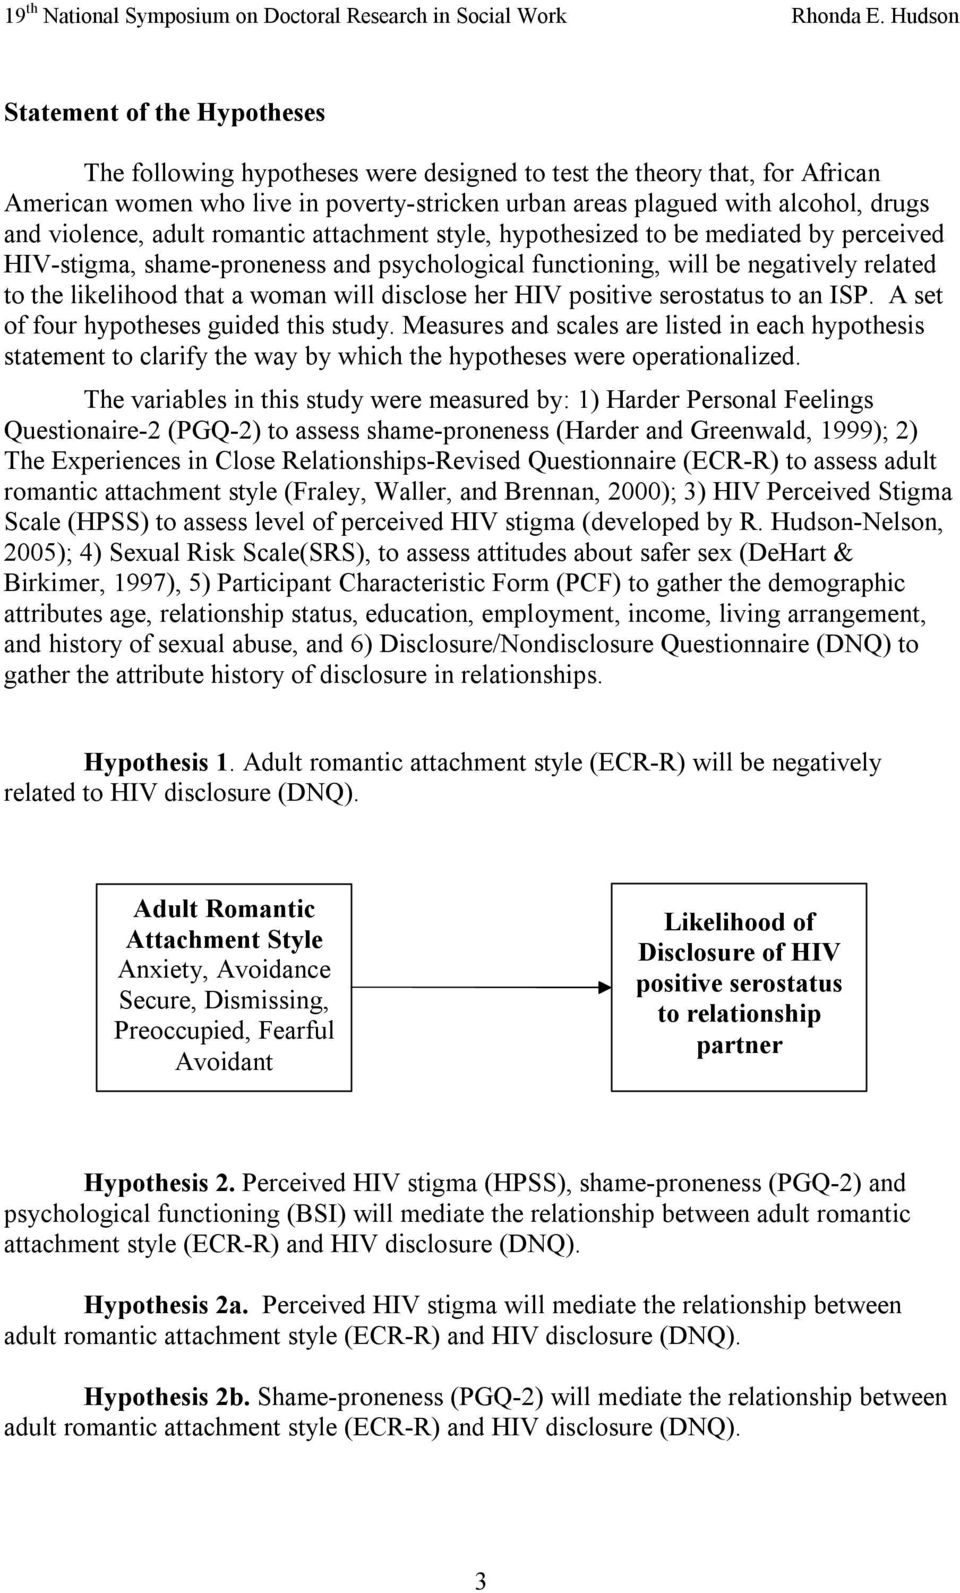 woman will disclose her HIV positive serostatus to an ISP. A set of four hypotheses guided this study.